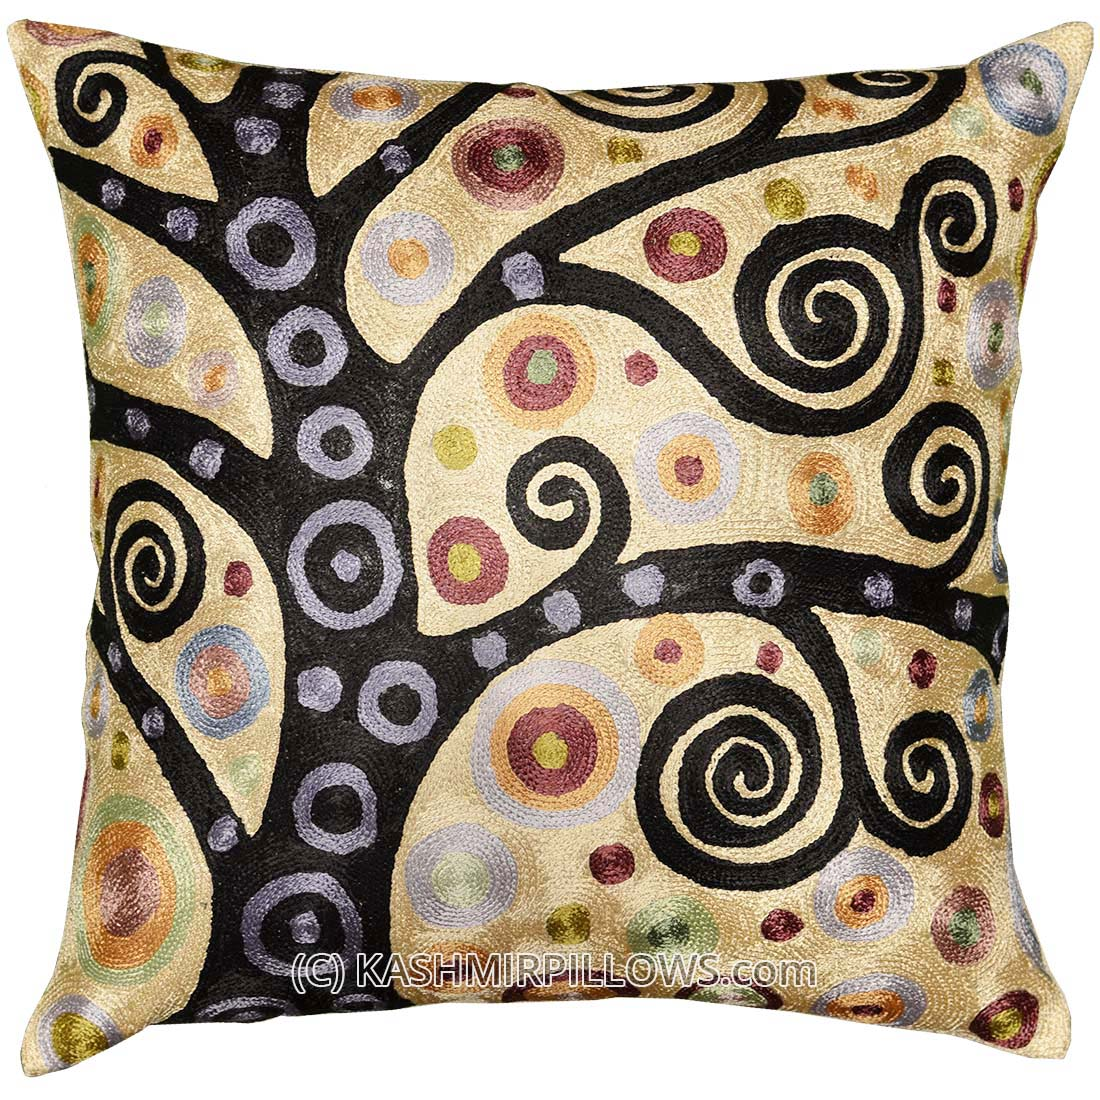 Couch Pillow Covers | Gold Throw Pillows | Big Couch Pillows